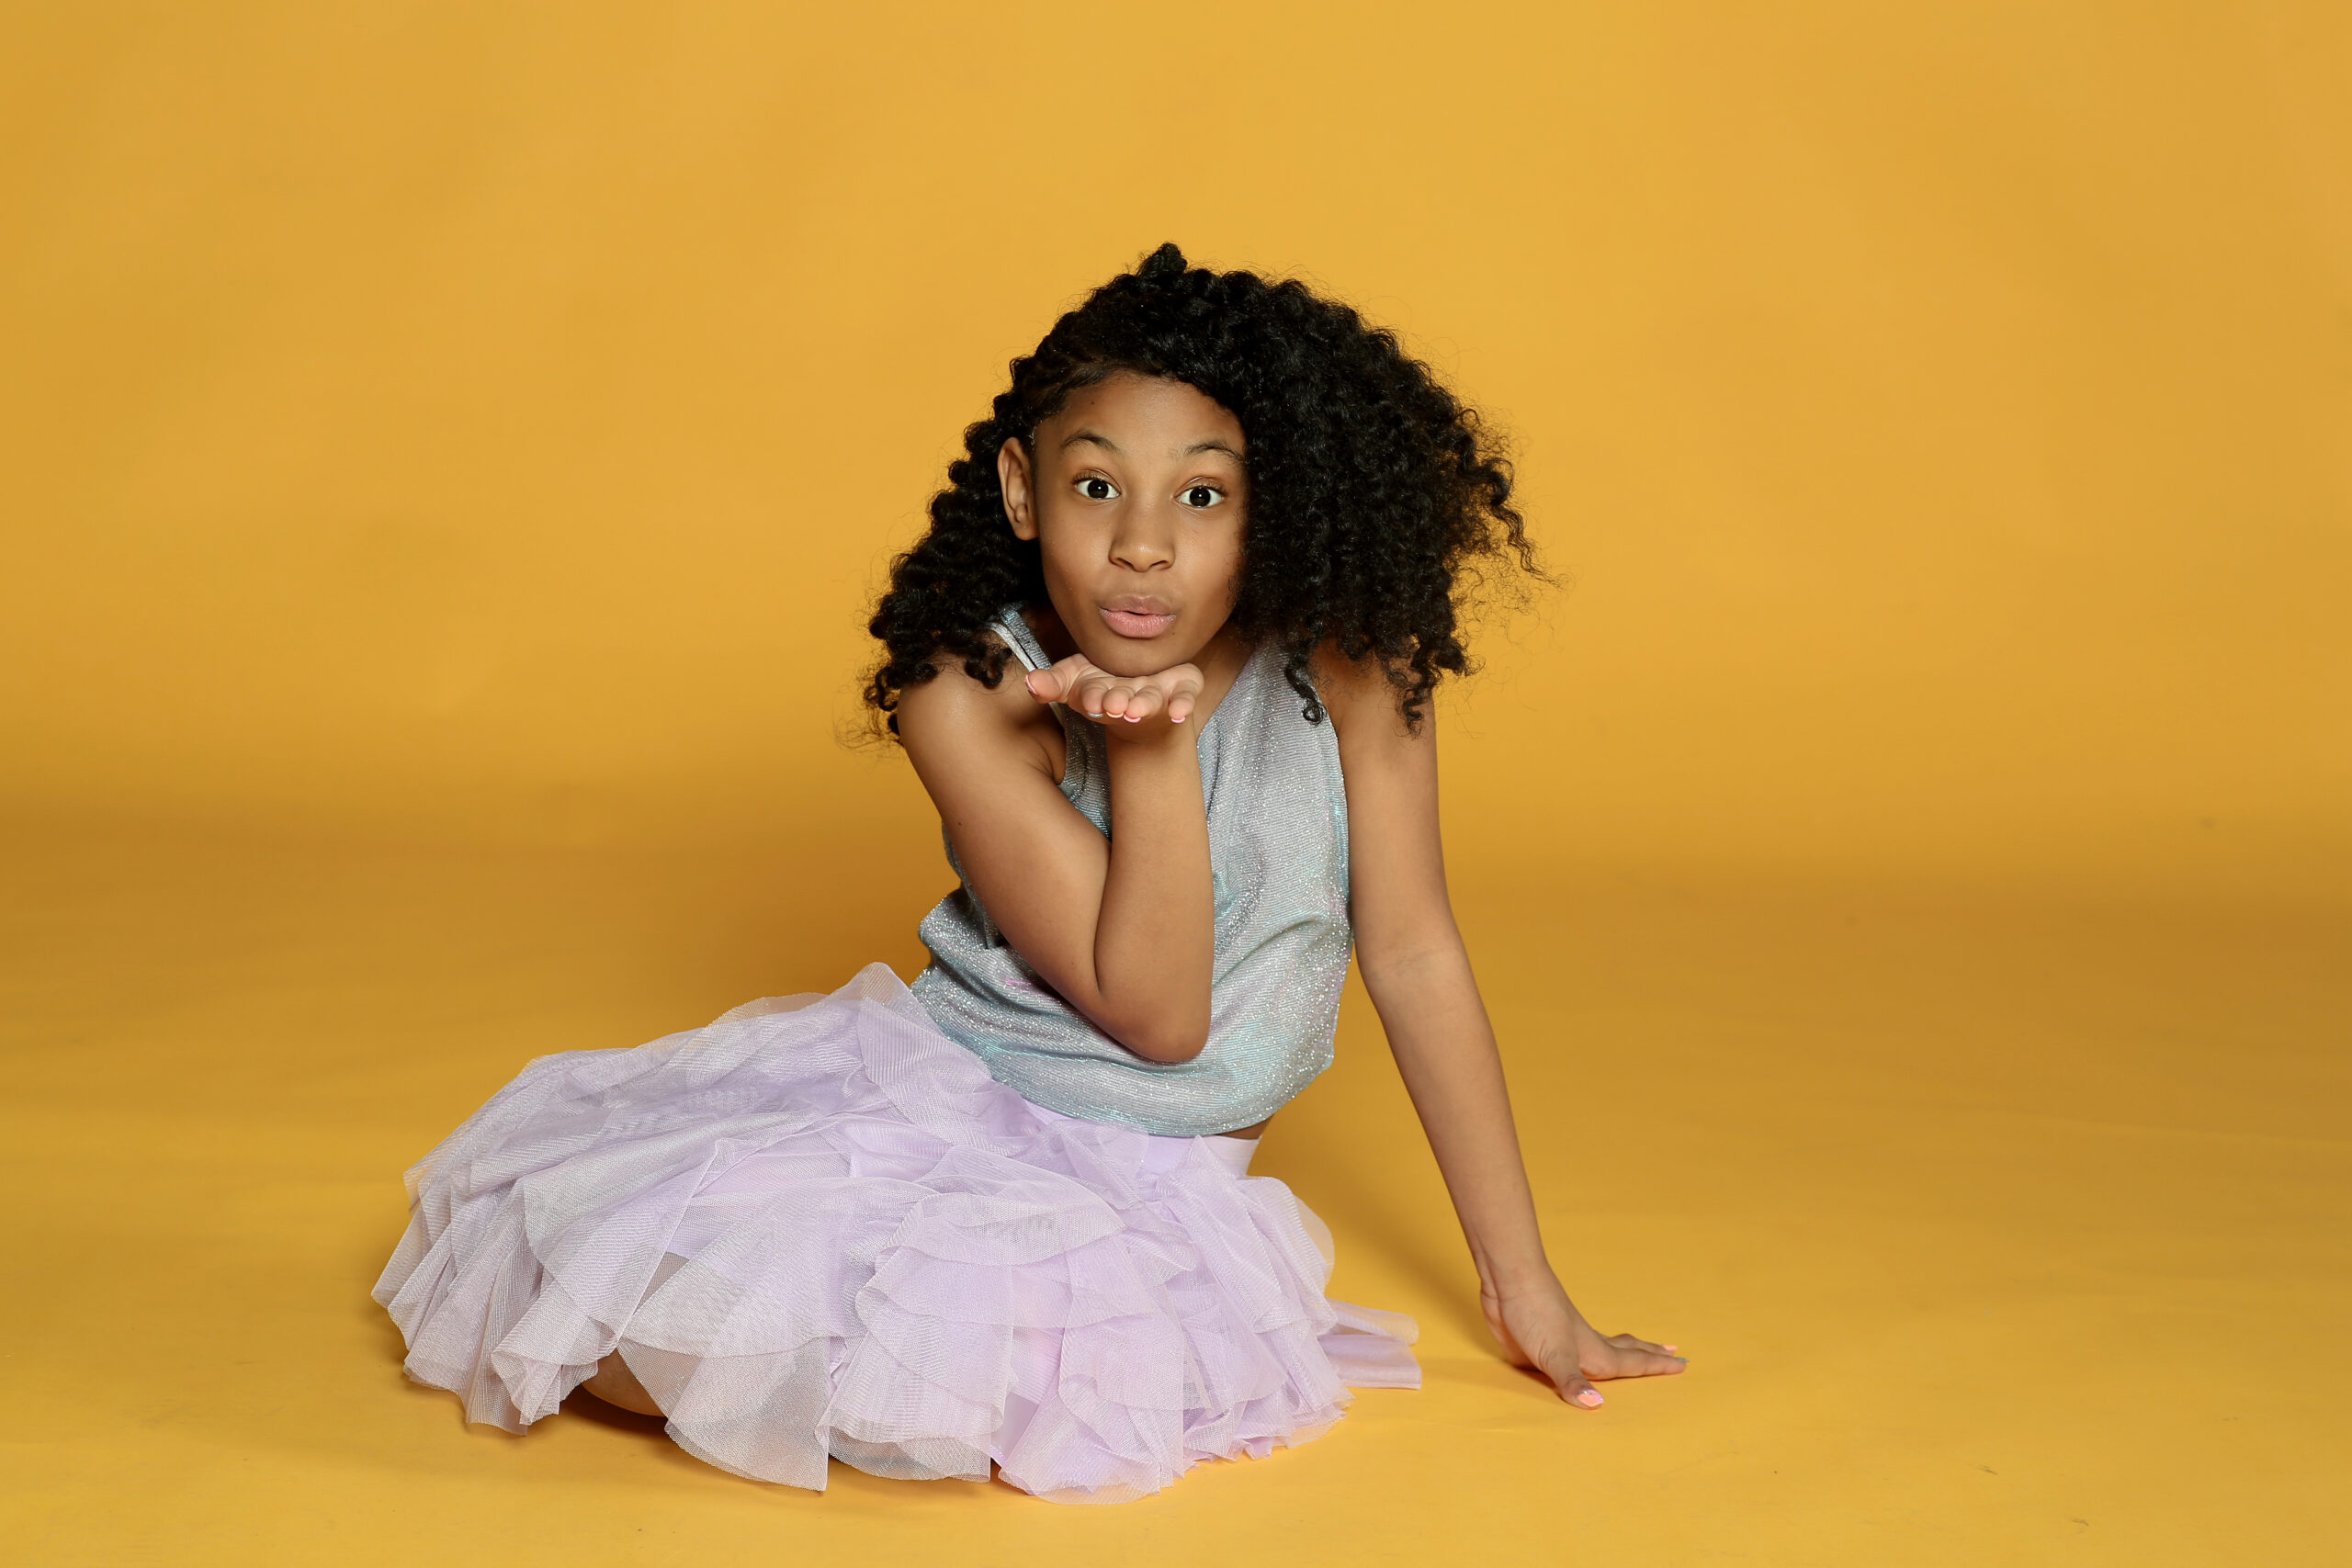 11 Year Old Rapper BEAUTI is Creating Her Own Wave In The Industry